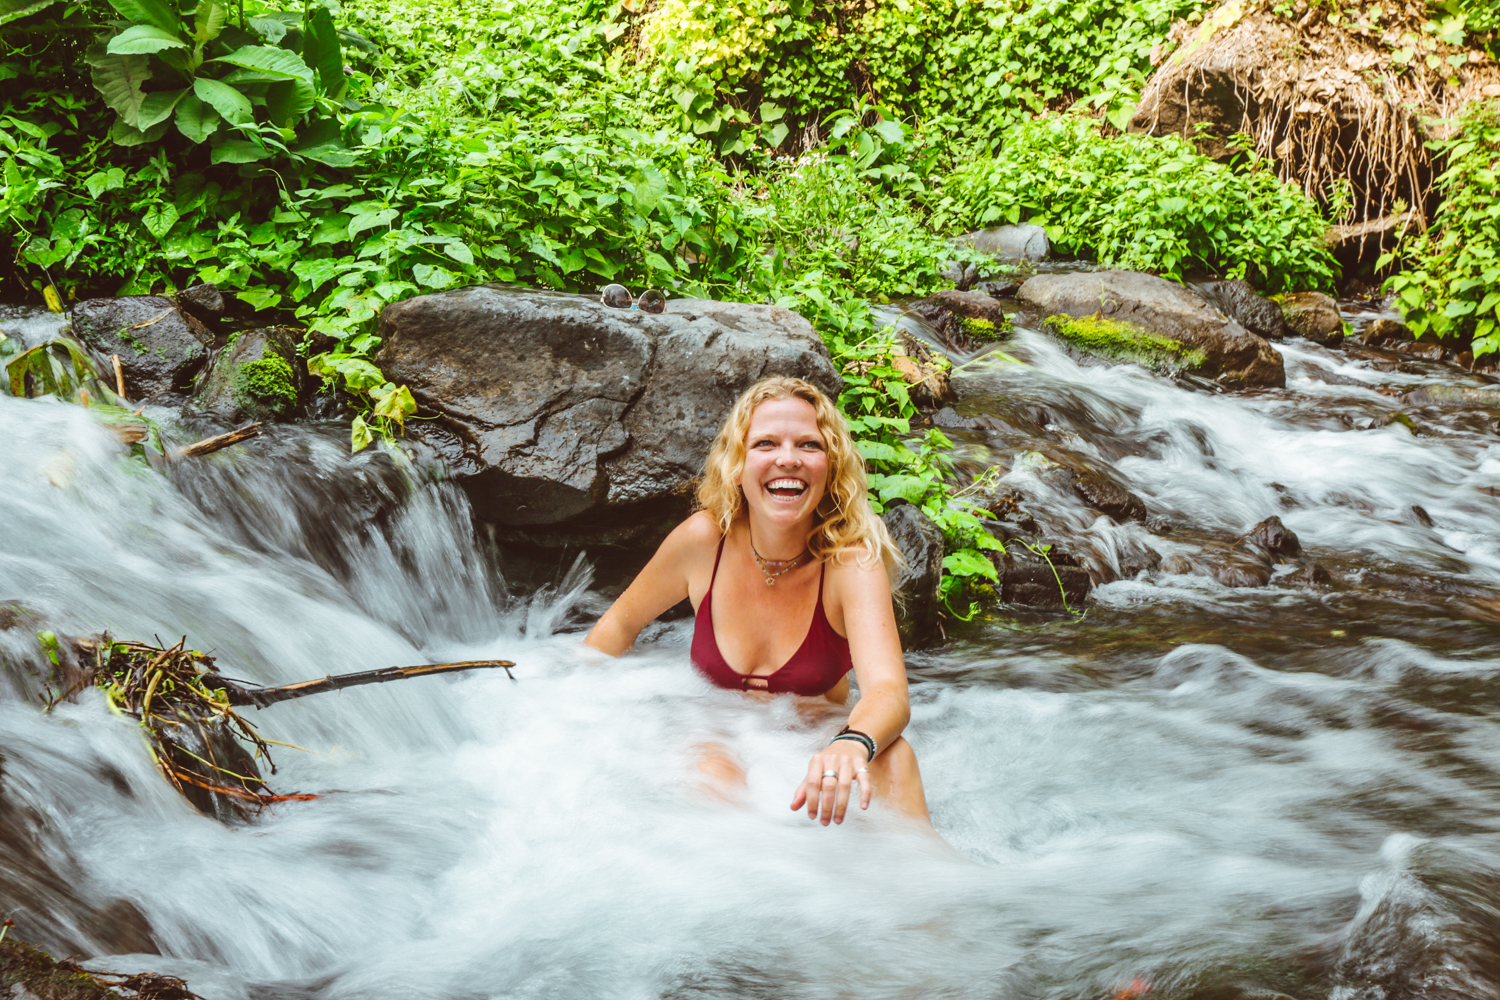 Nicole LaPorte relaxes in a river outside of San Lucas Toliman, Guatemala, with friends during a weekend camping trip.